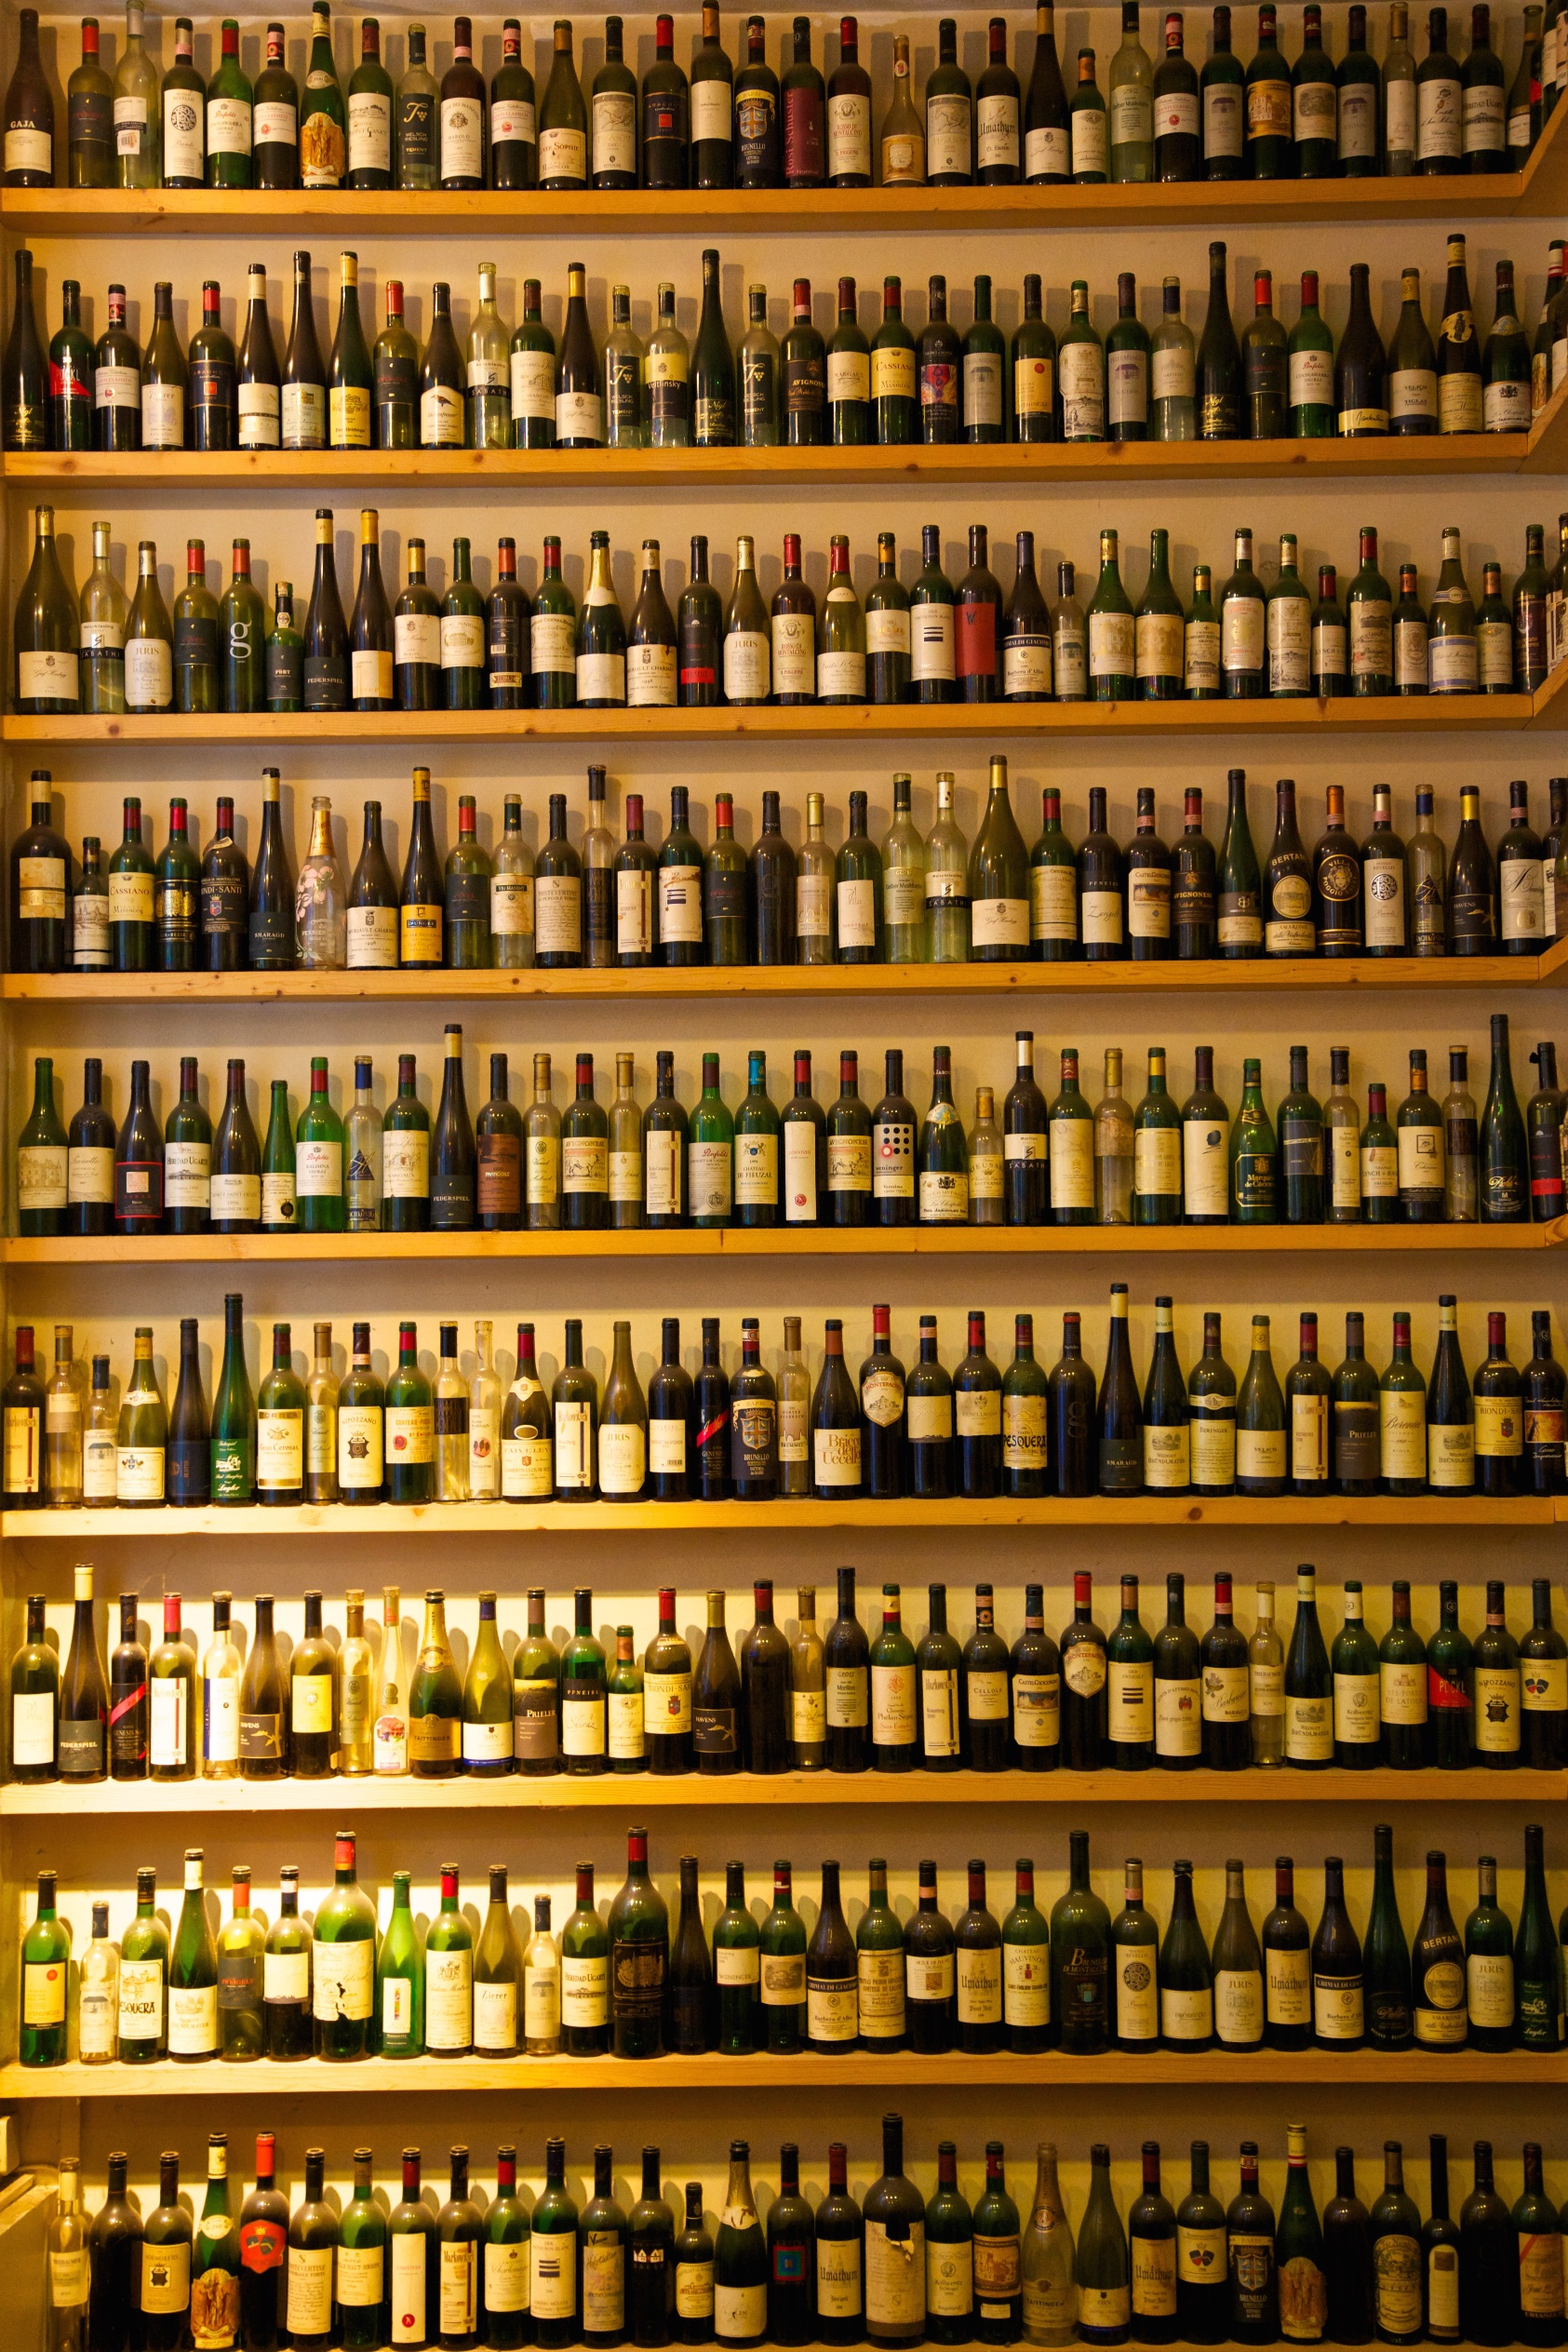 Wine bottles merely to be looked at (unless you possess a ladder).